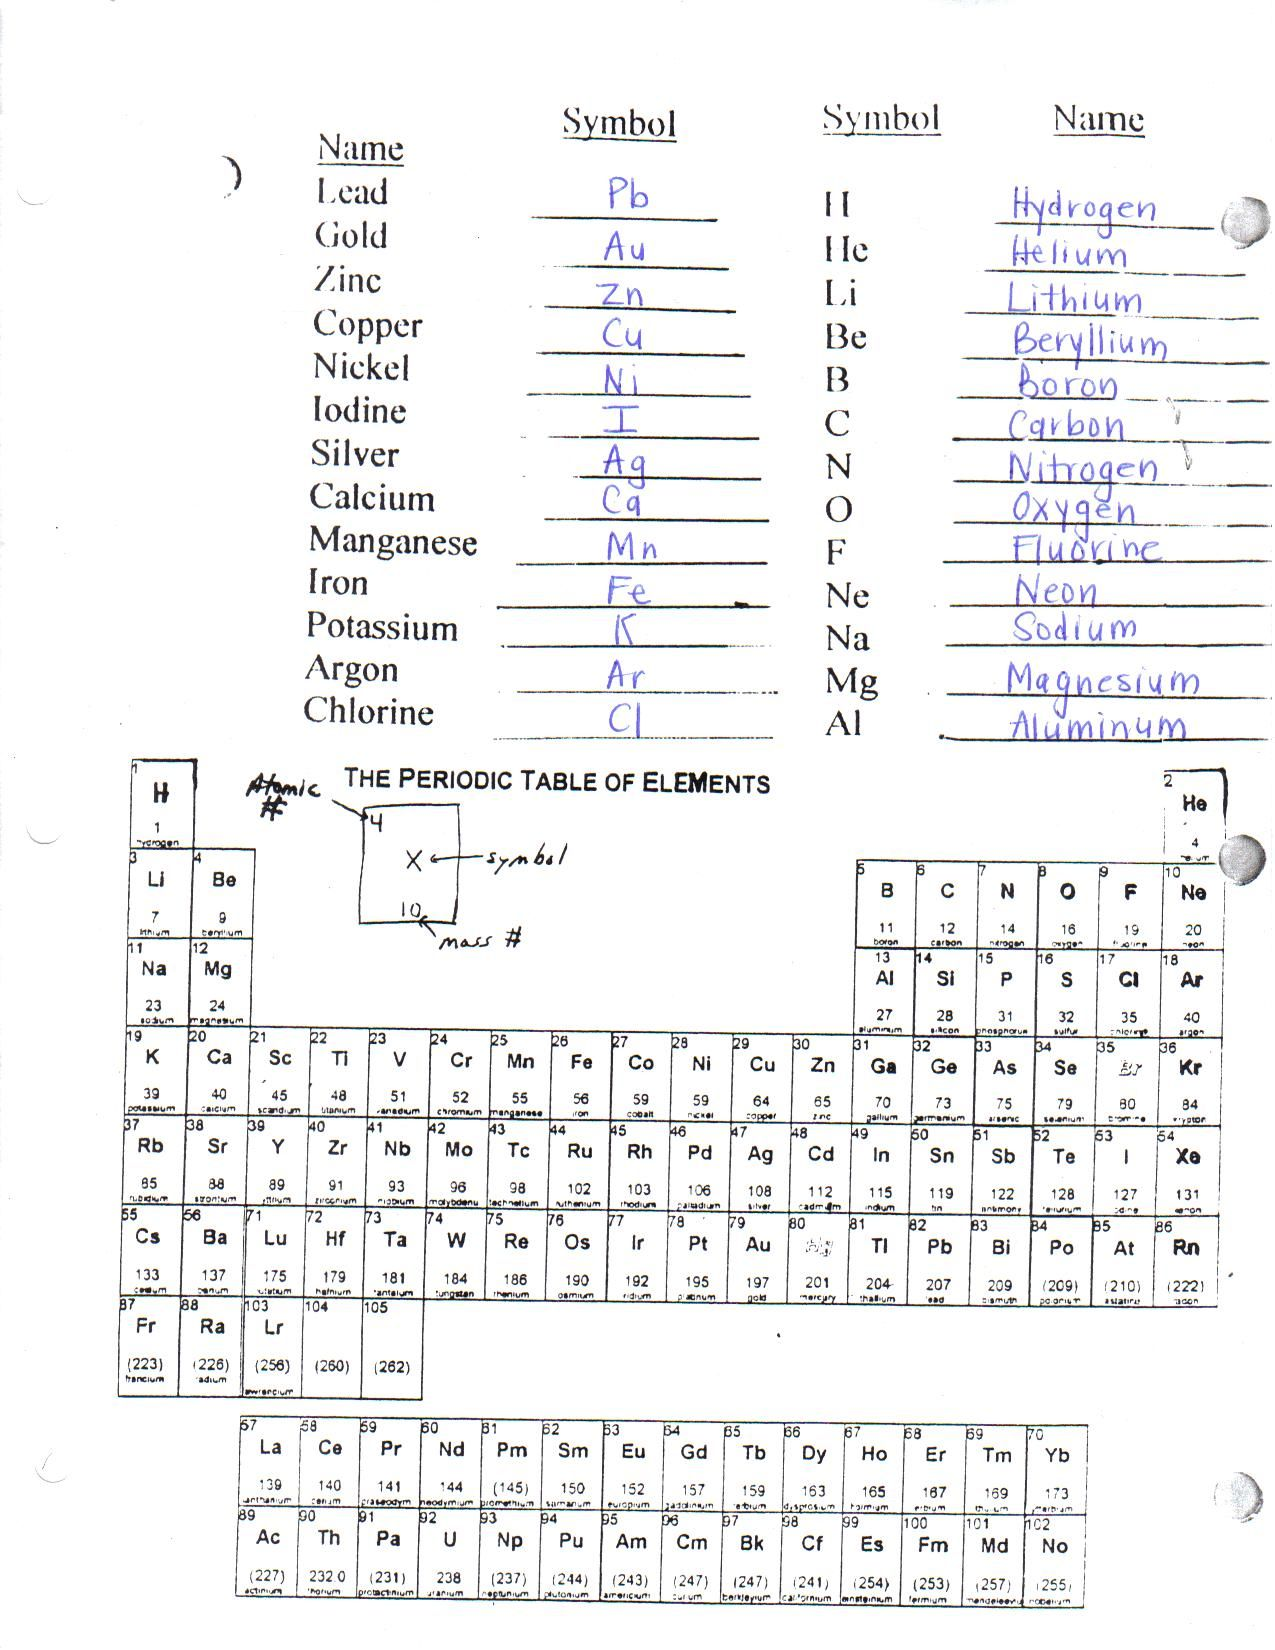 counting atoms worksheet Google Search Periodic table